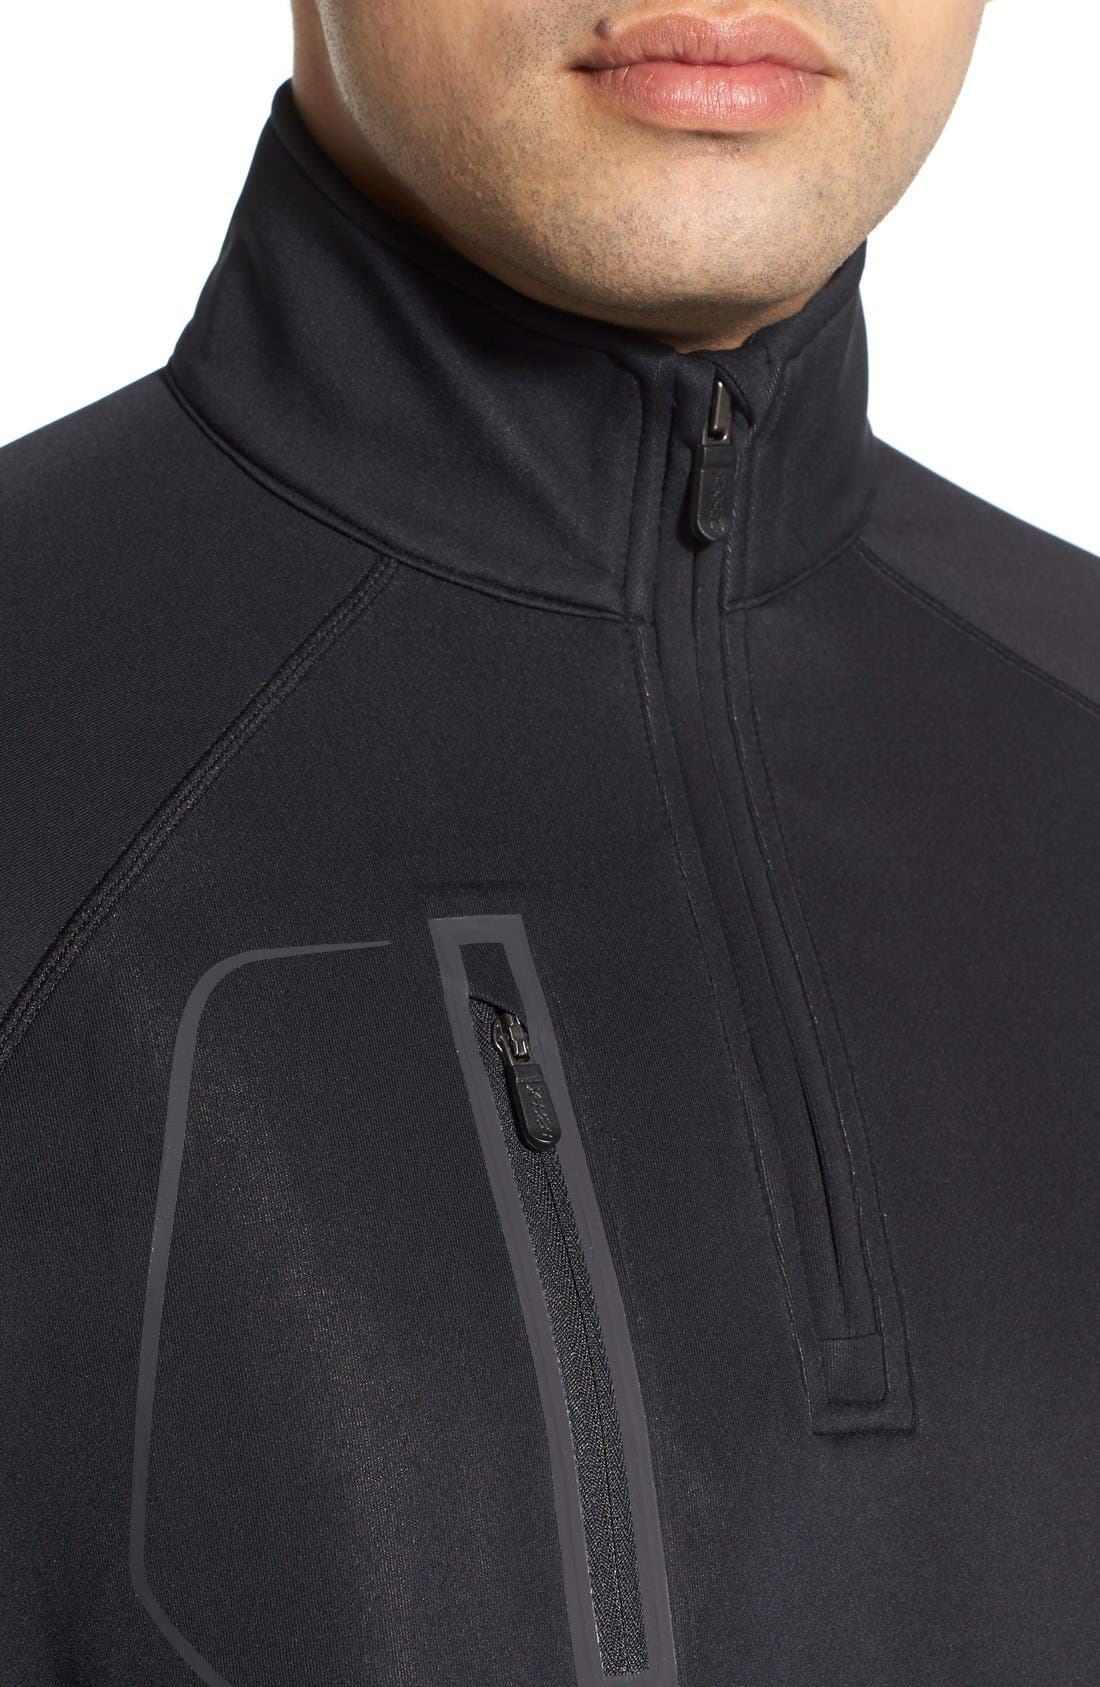 XH2O Crawford Stretch Quarter Zip Golf Pullover,                             Alternate thumbnail 4, color,                             Black